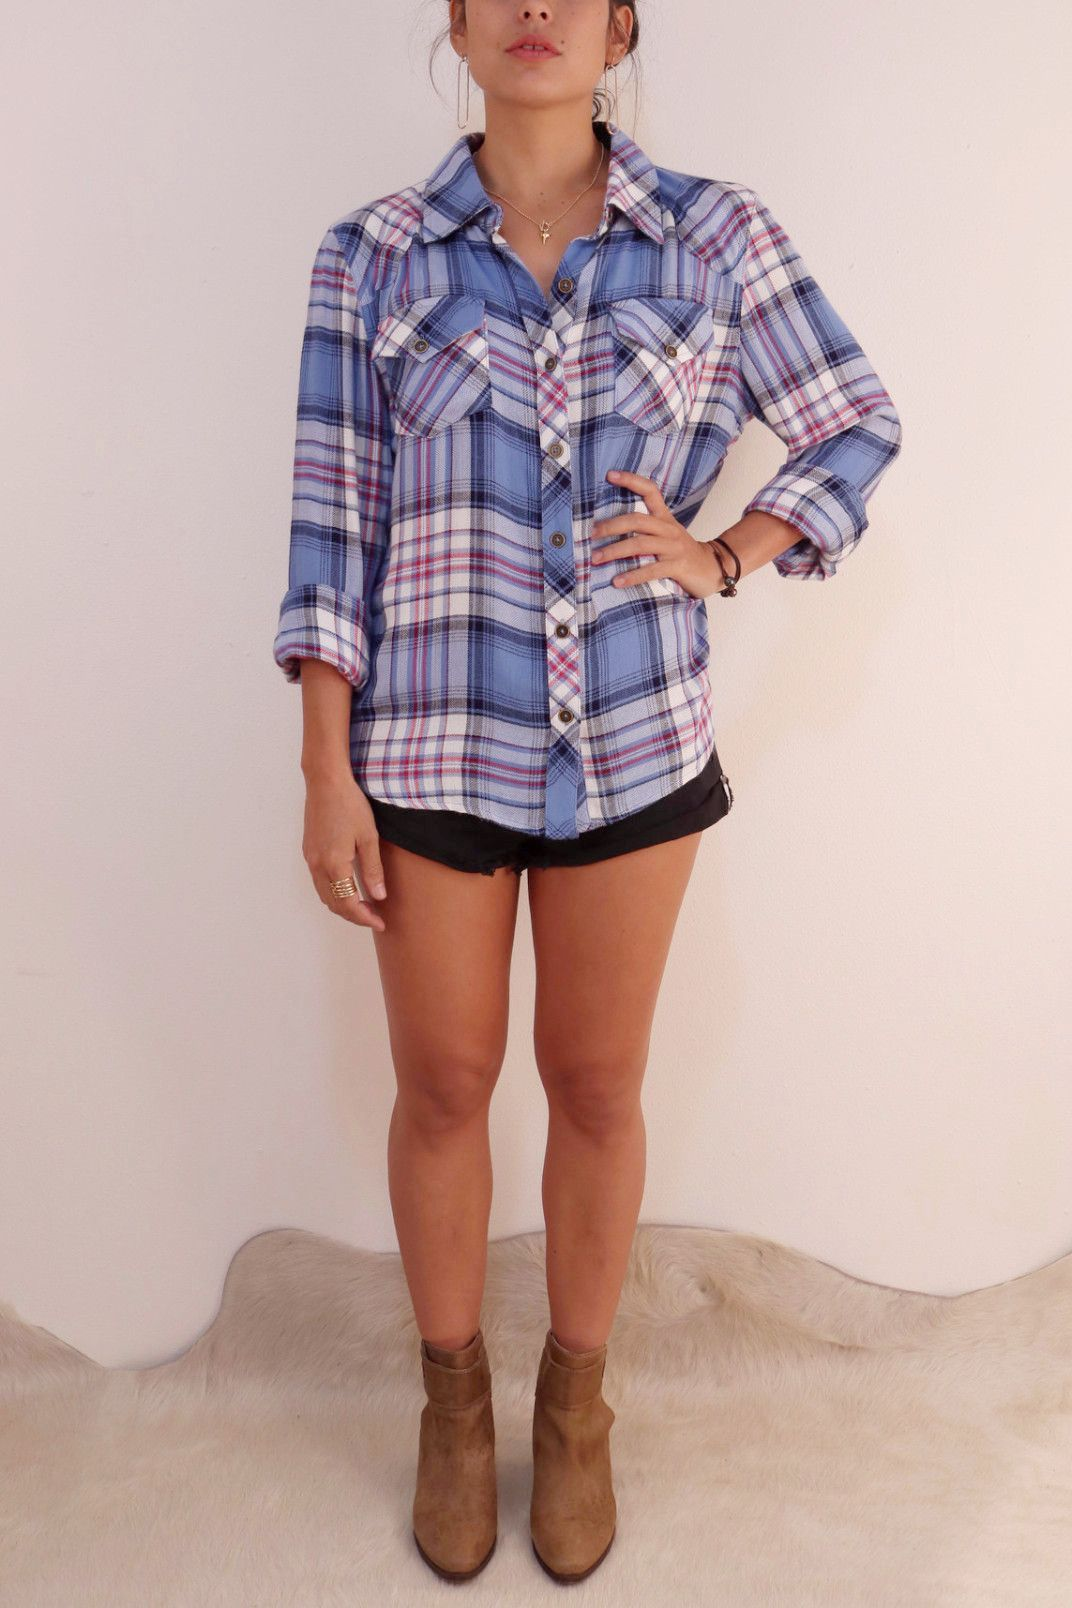 Flannel shirts at kohl's  Avalon flannel  Walker  Products  Pinterest  Products